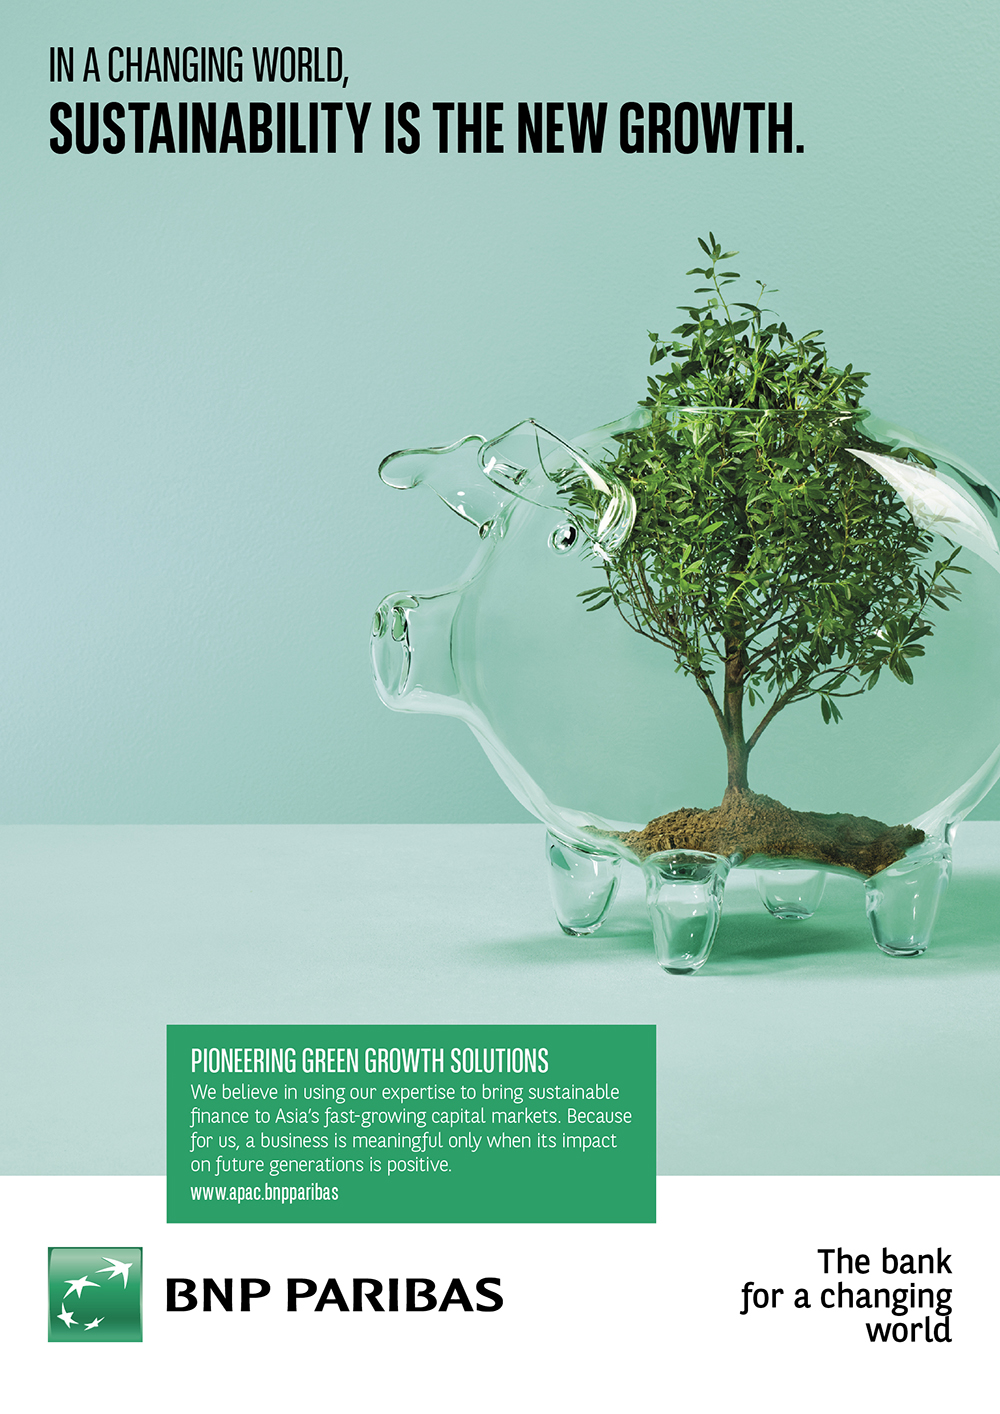 bnp-paribas-publicite-marketing-banque-in-a-changing-world-la-banque-un-monde-qui-change-2015-publicis-conseil-5